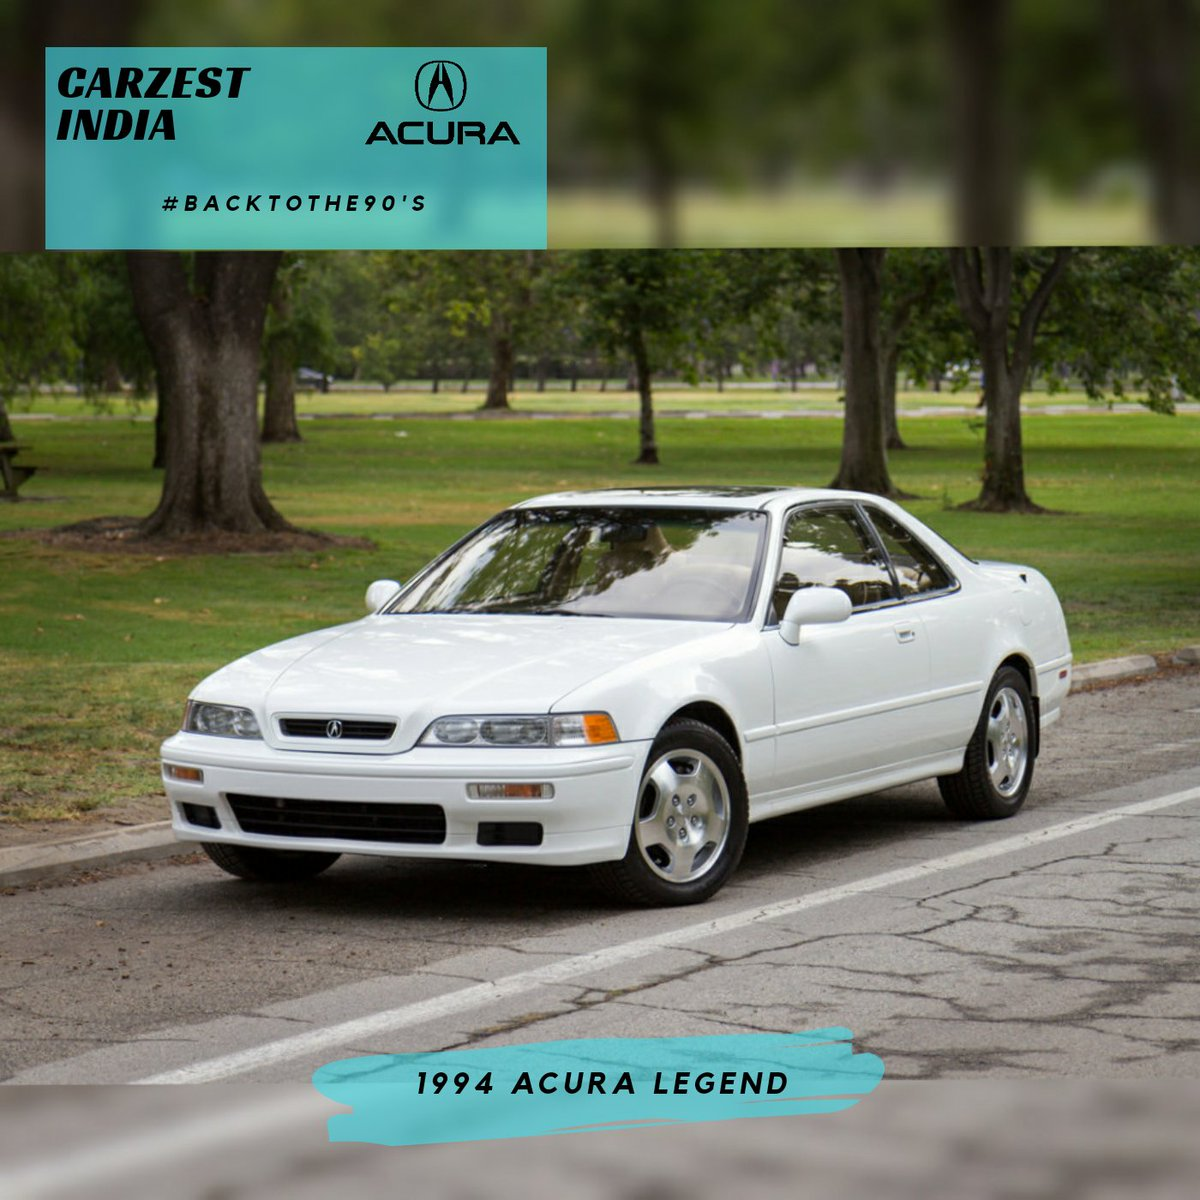 Carzest India On Twitter Back To The 90 S 10 Acura Legend A Luxurious Product From The Japanese Stable The Most Loved Sedan In Usa Japan Other Domestic Markets